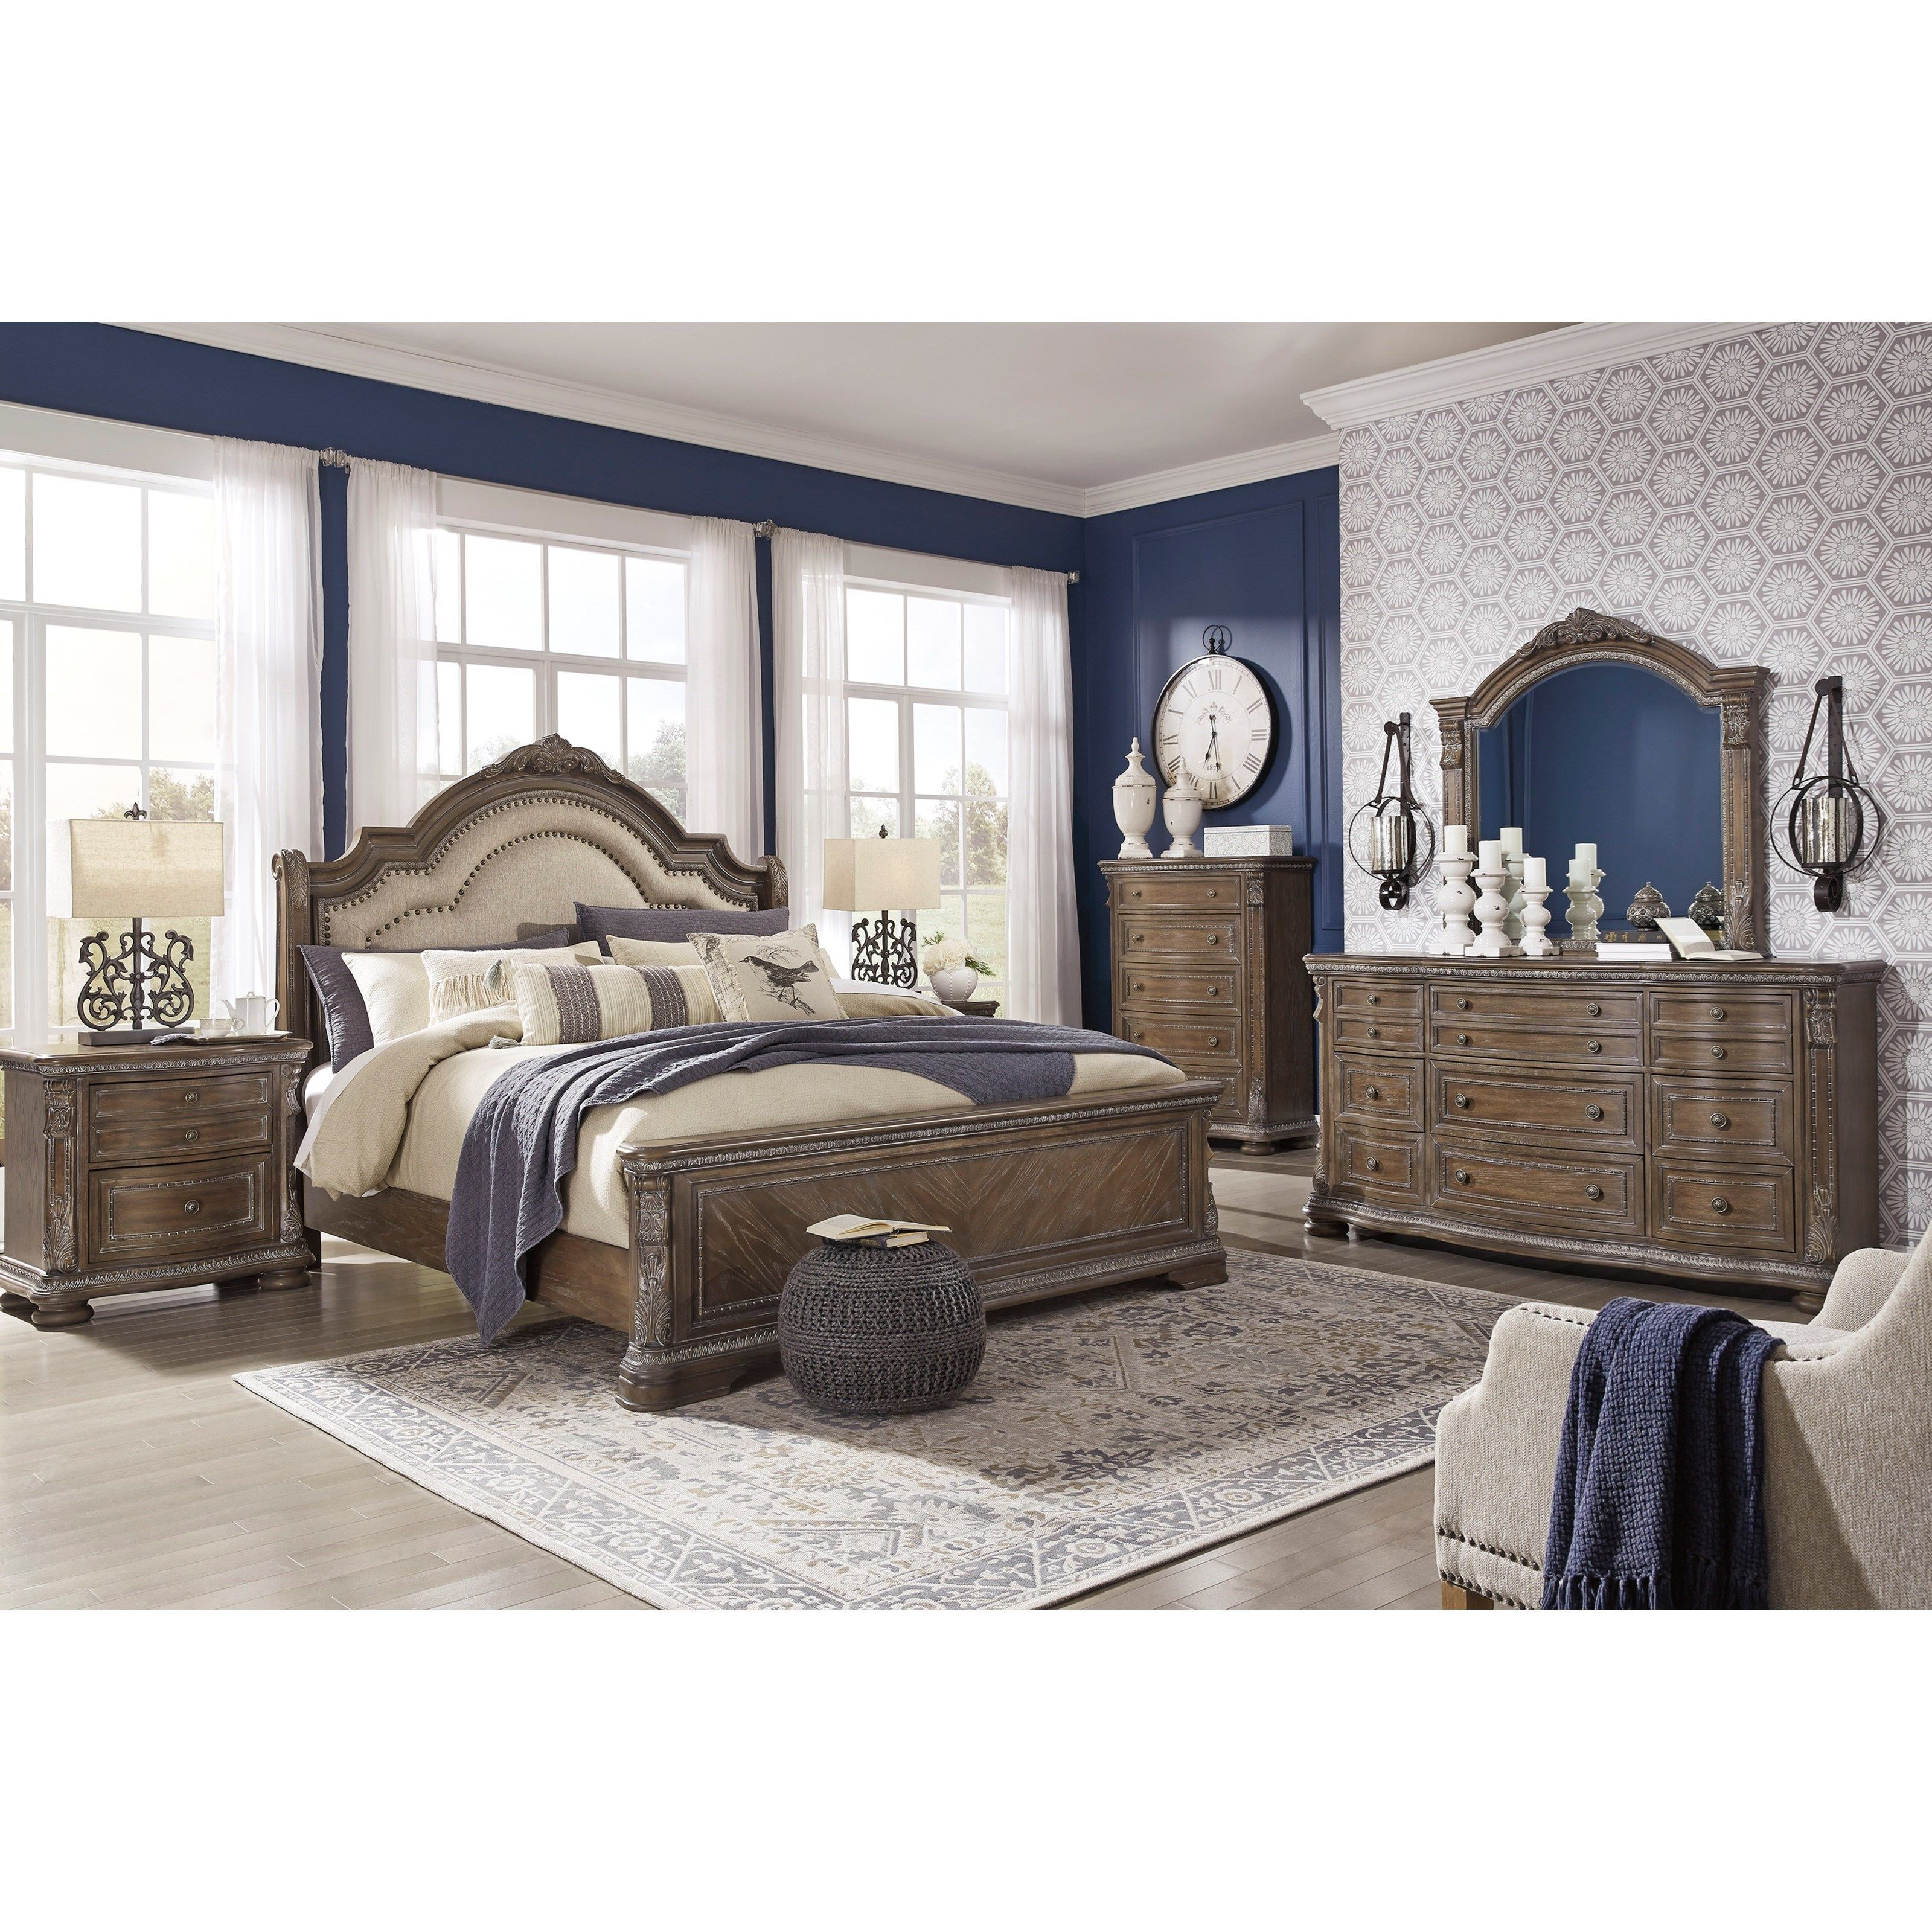 Charmond Queen Bedroom Group By Benchcraft At Virginia Furniture